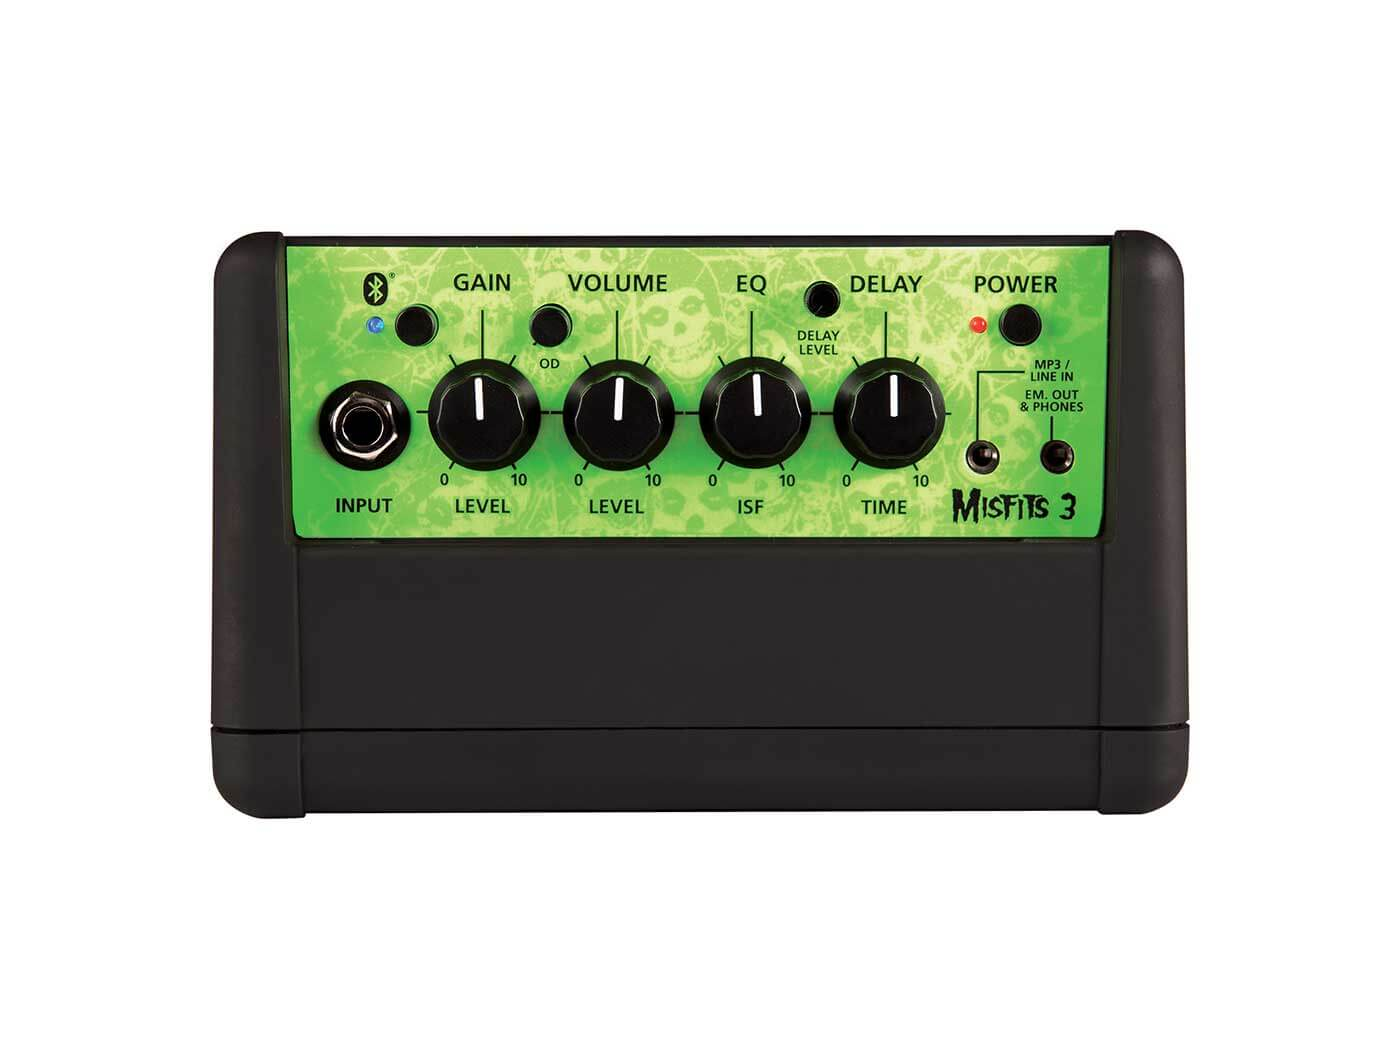 The control panel of the Misfits 3 Bluetooth.